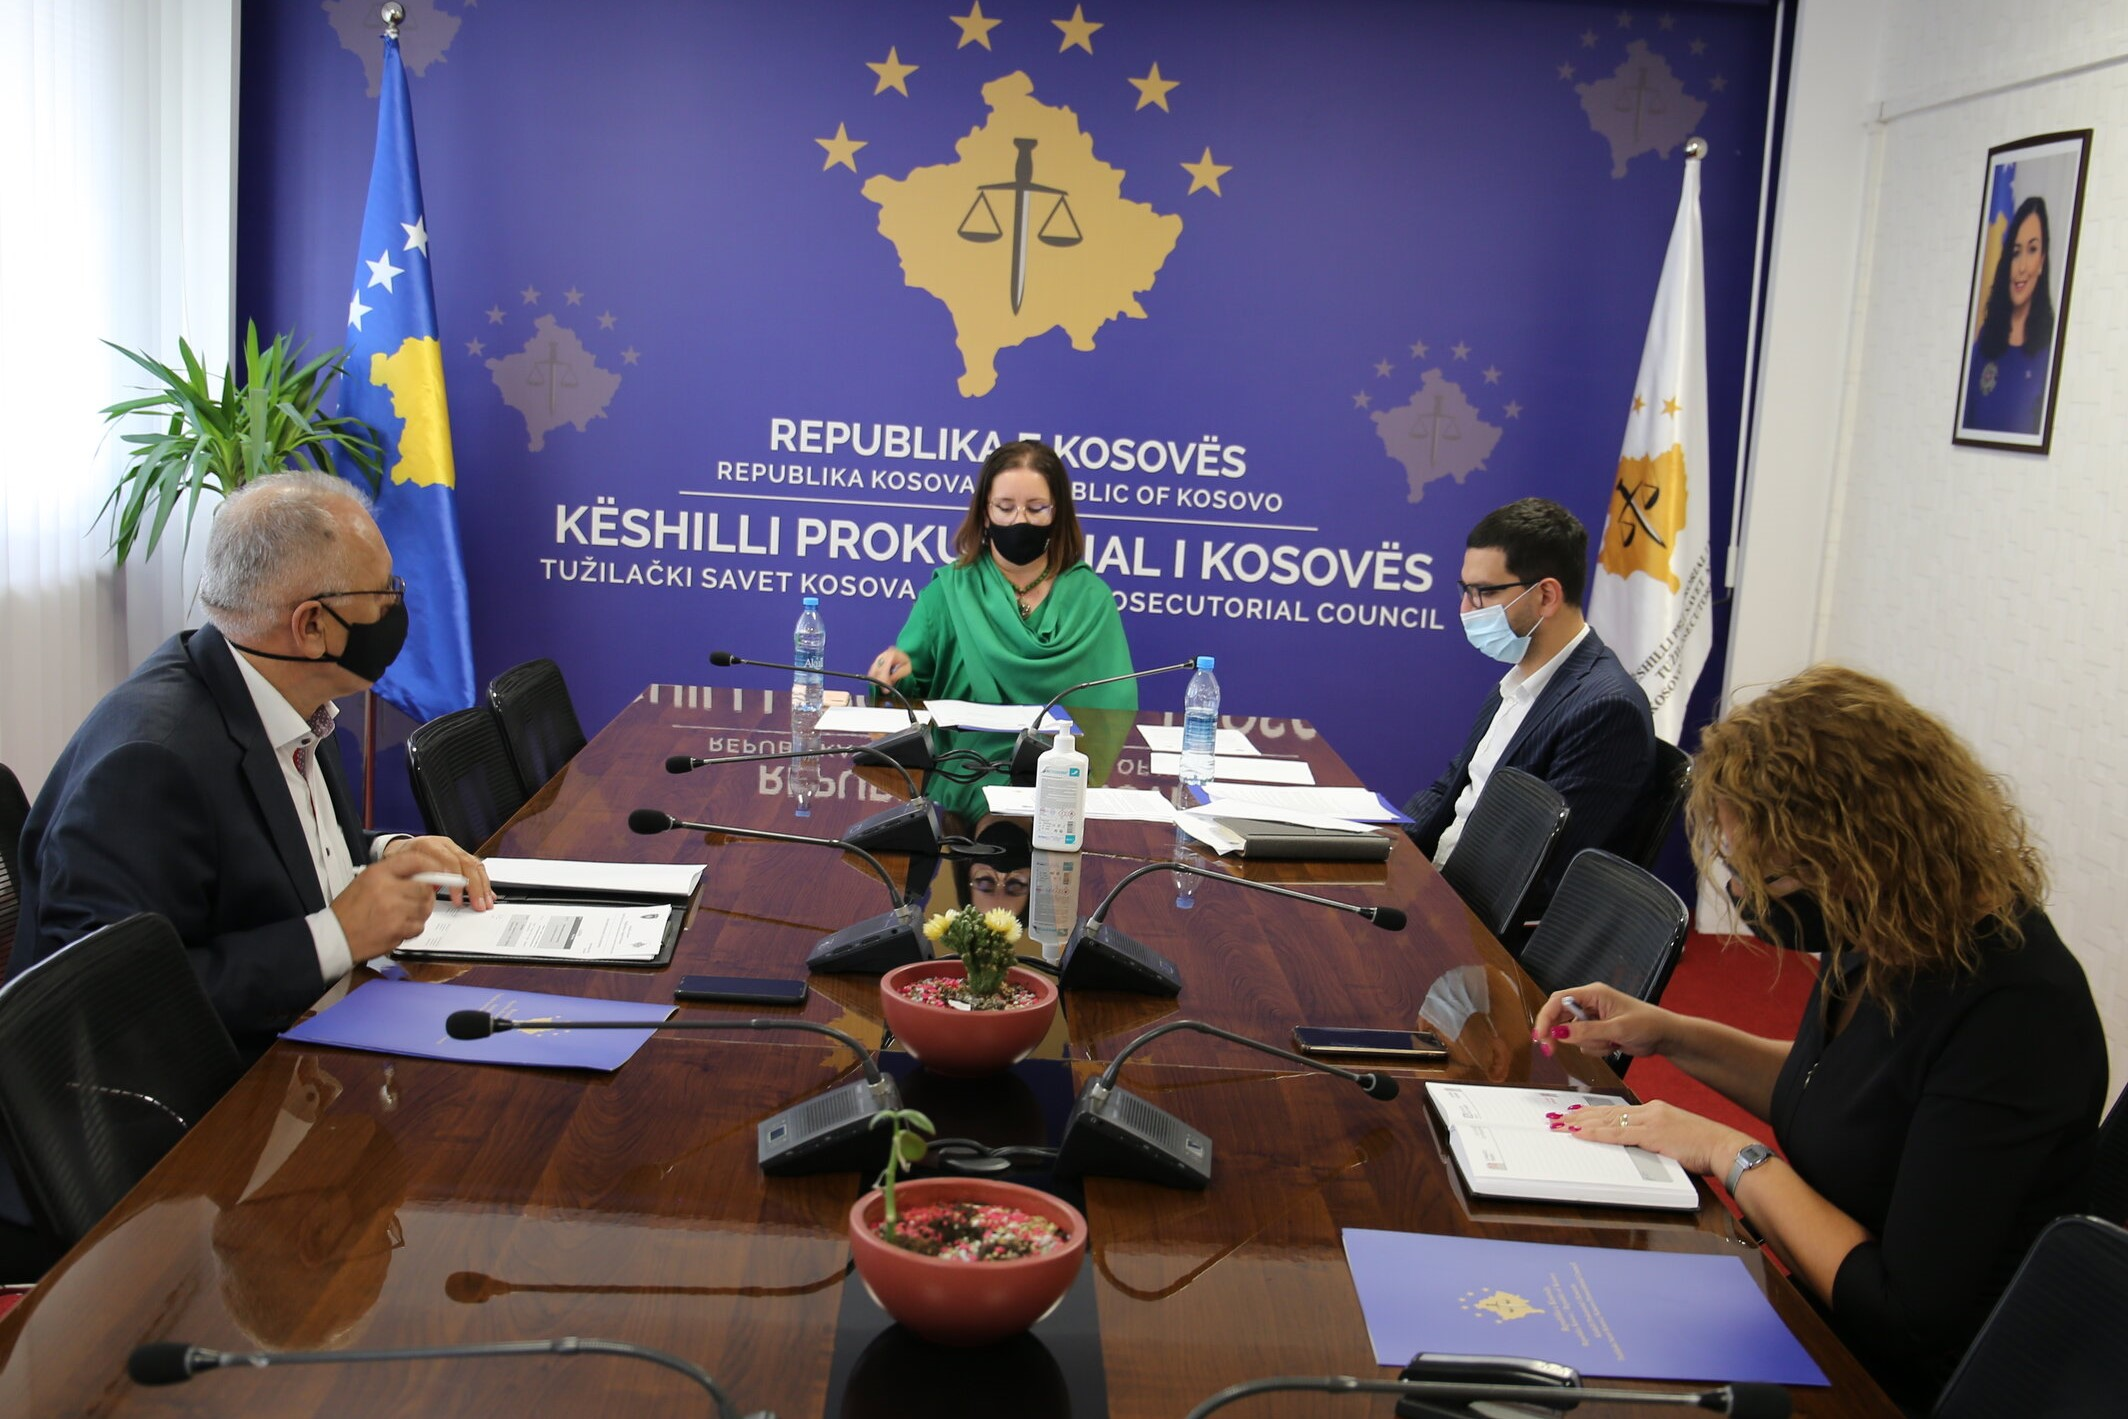 The 6-month work report of the Committee on Budget, Finance and Personnel is reviewed